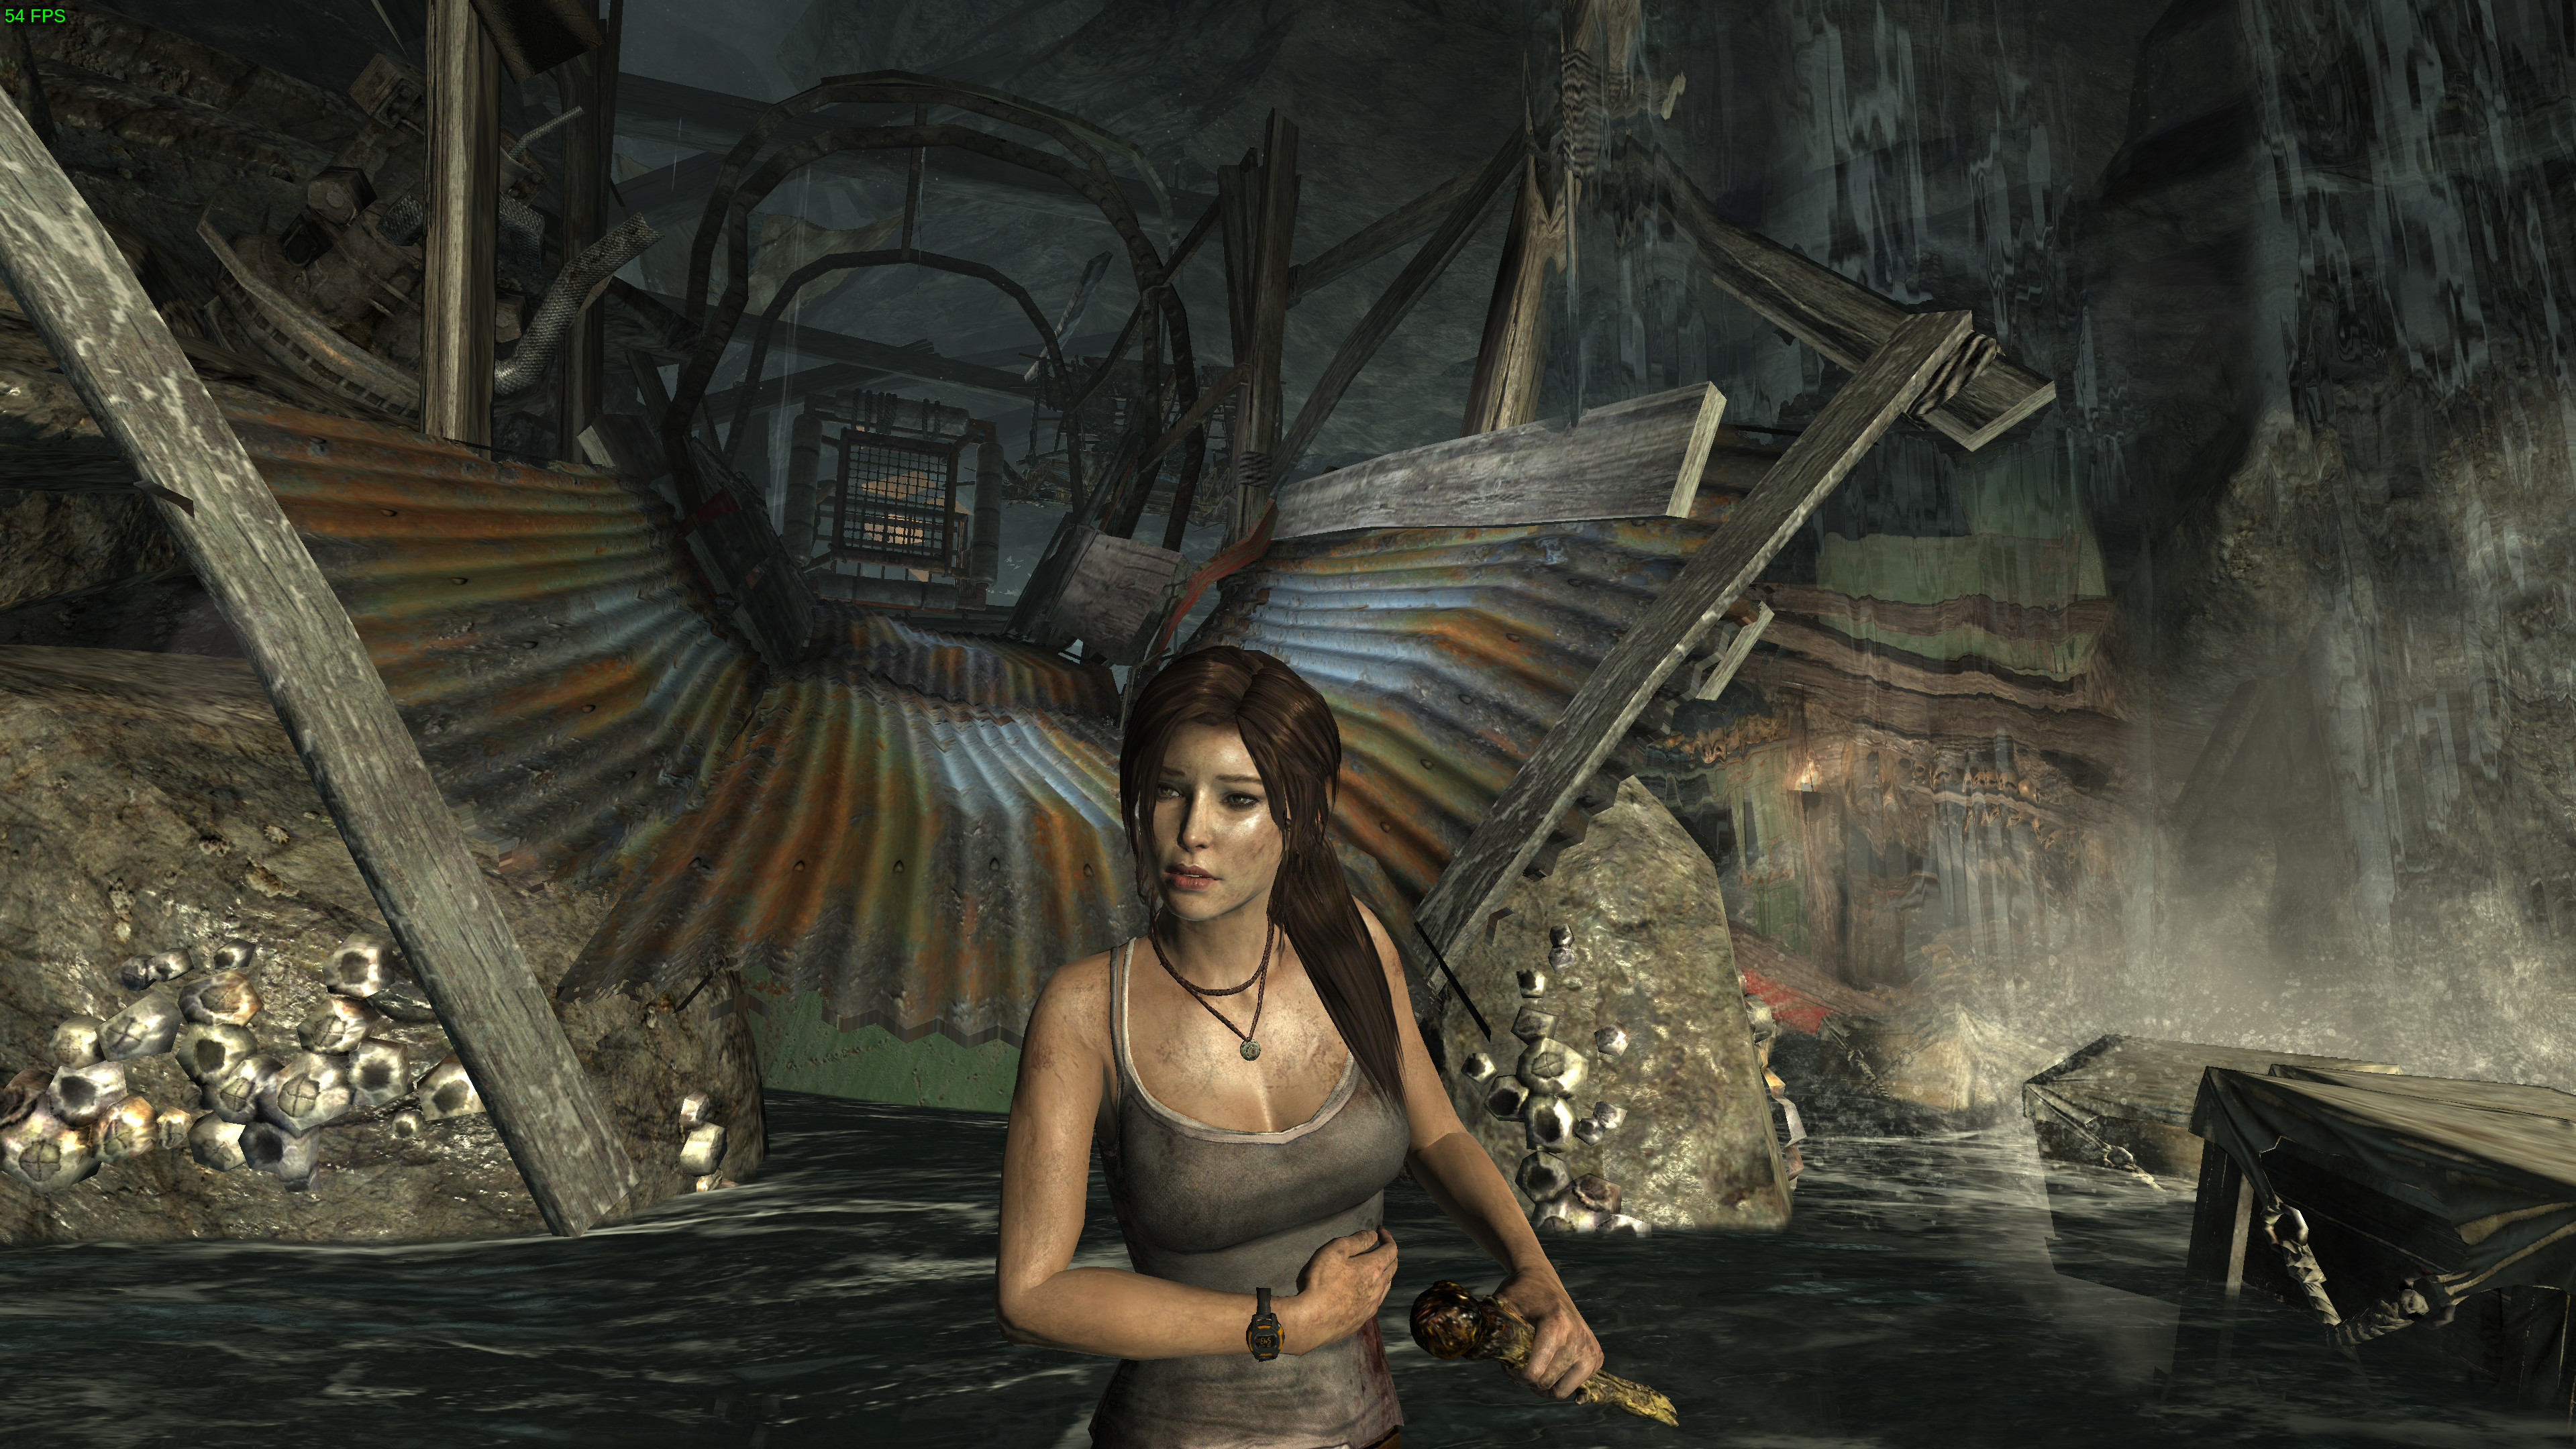 Get Tomb Raider For Free On Steam Until March 24th Linuxreviews